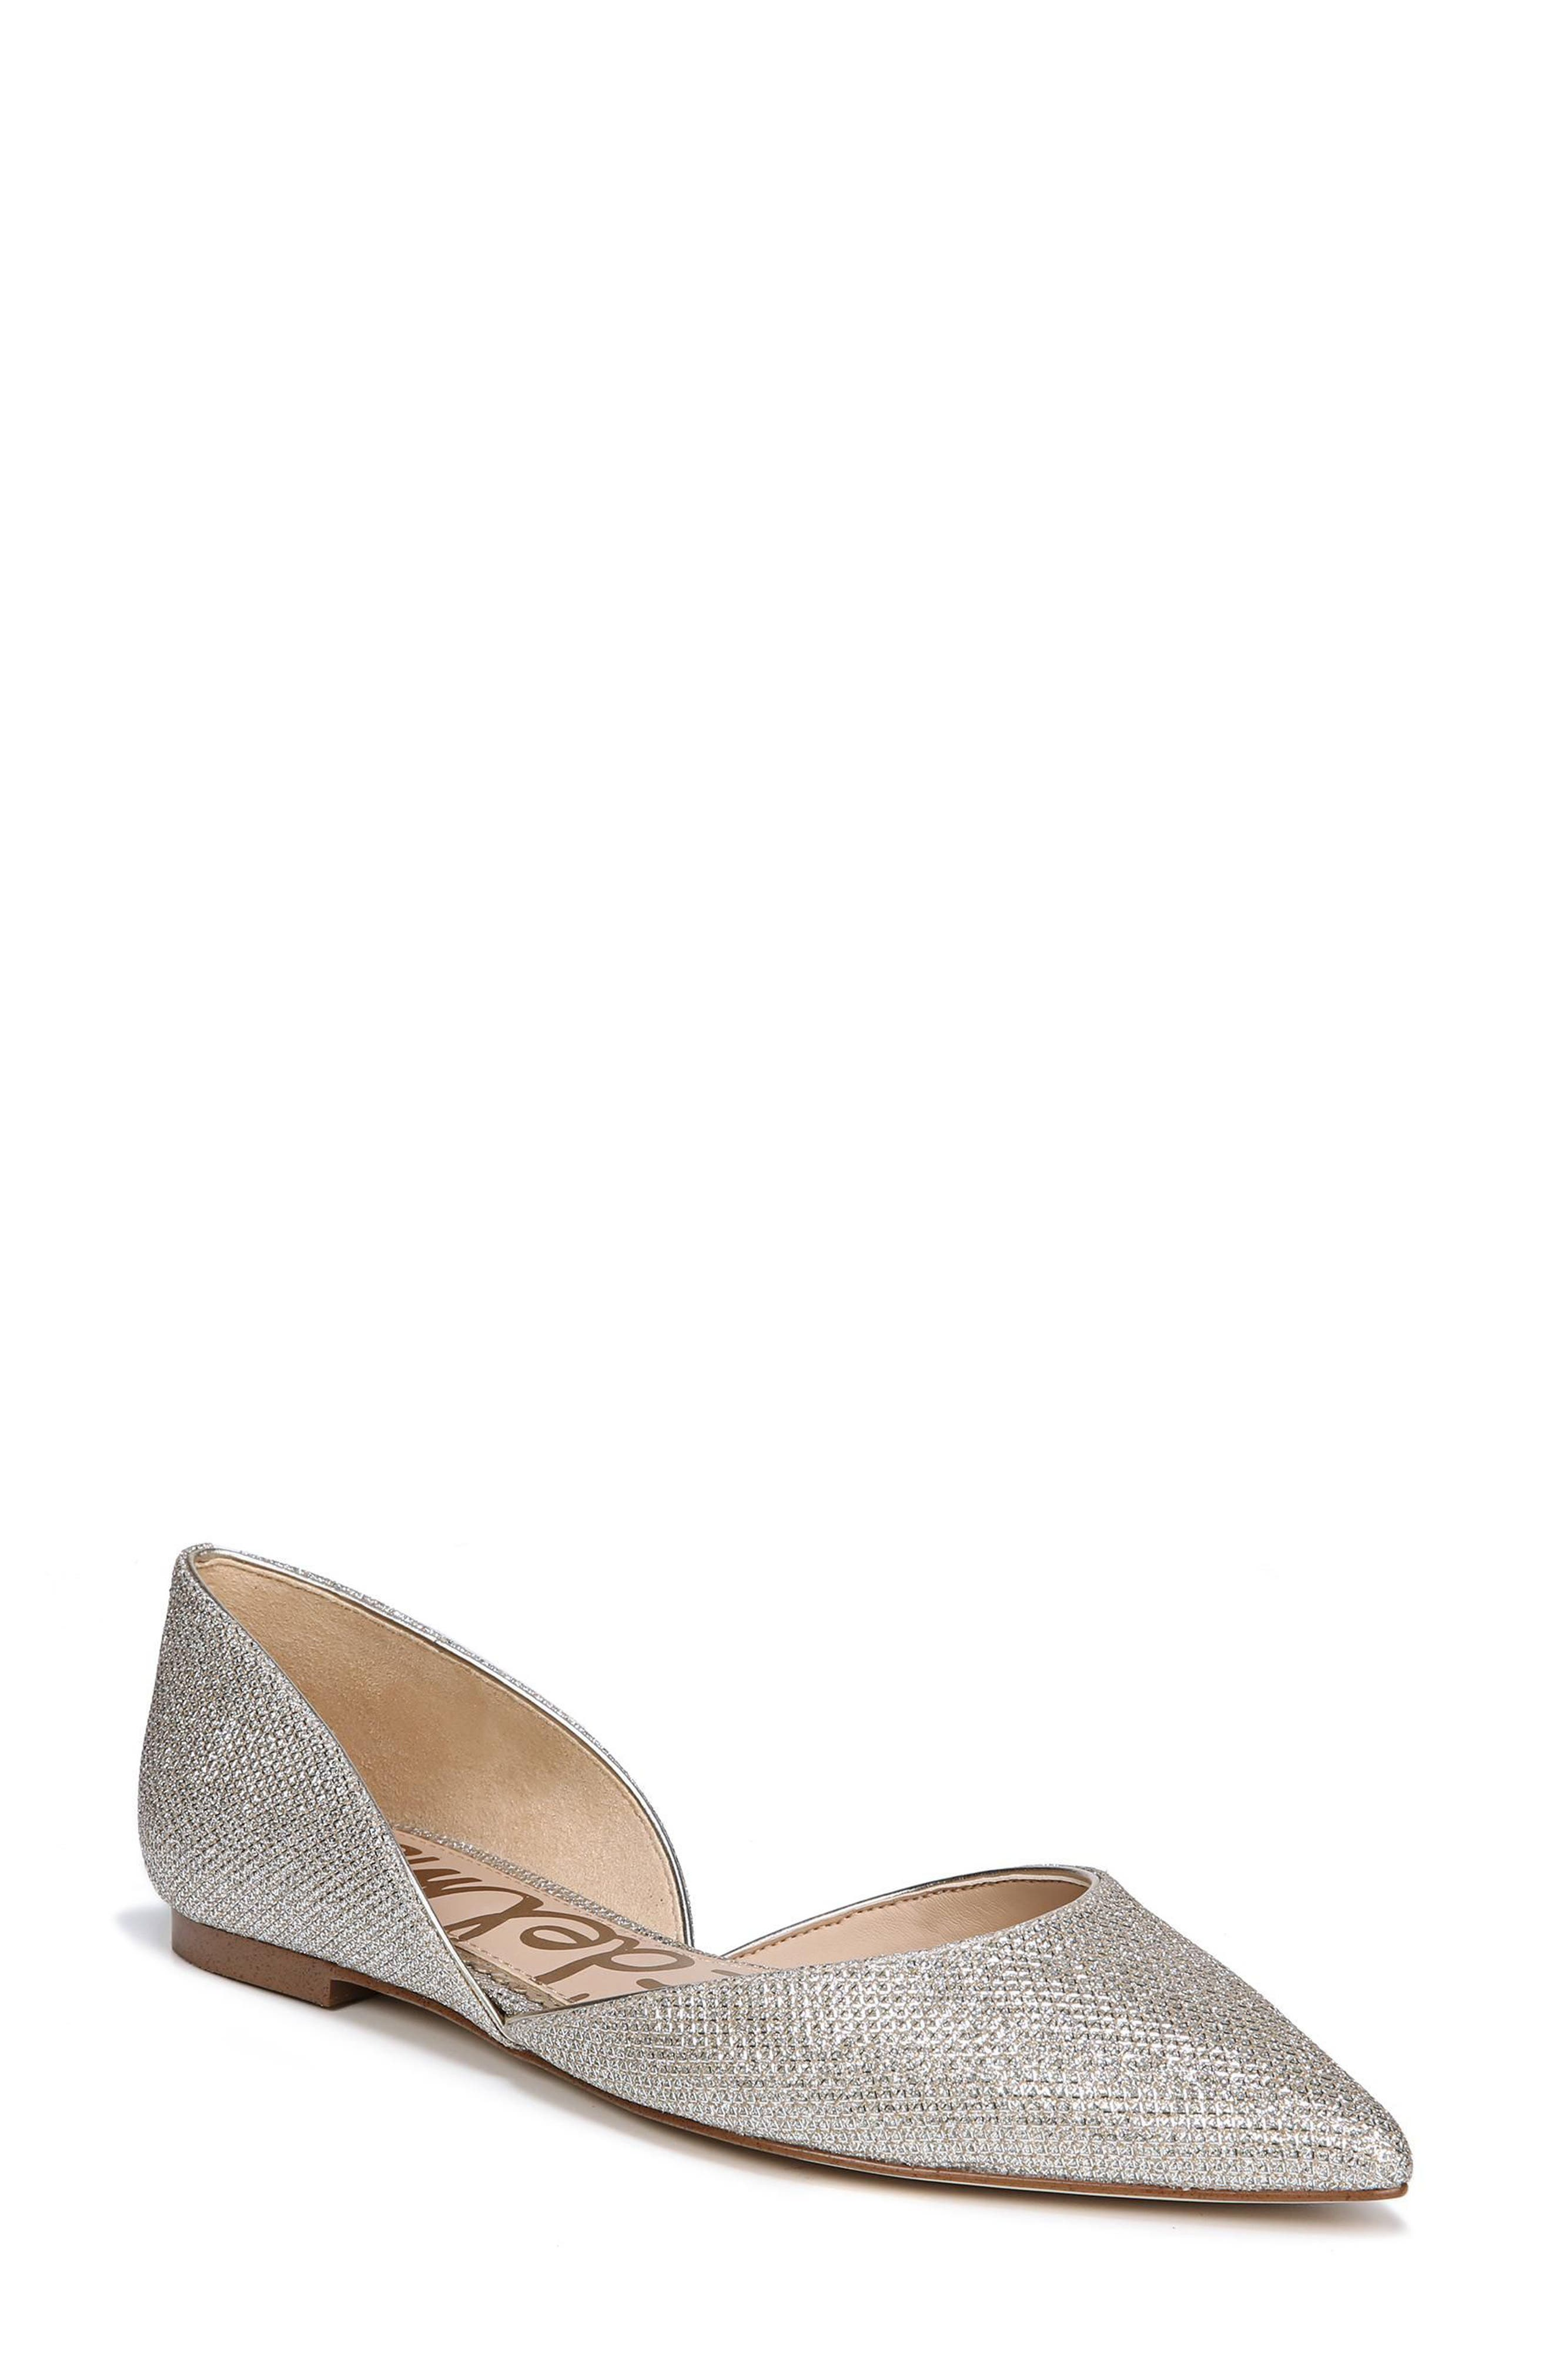 Rodney Pointy Toe d'Orsay Flat,                         Main,                         color, JUTE GLAM FABRIC